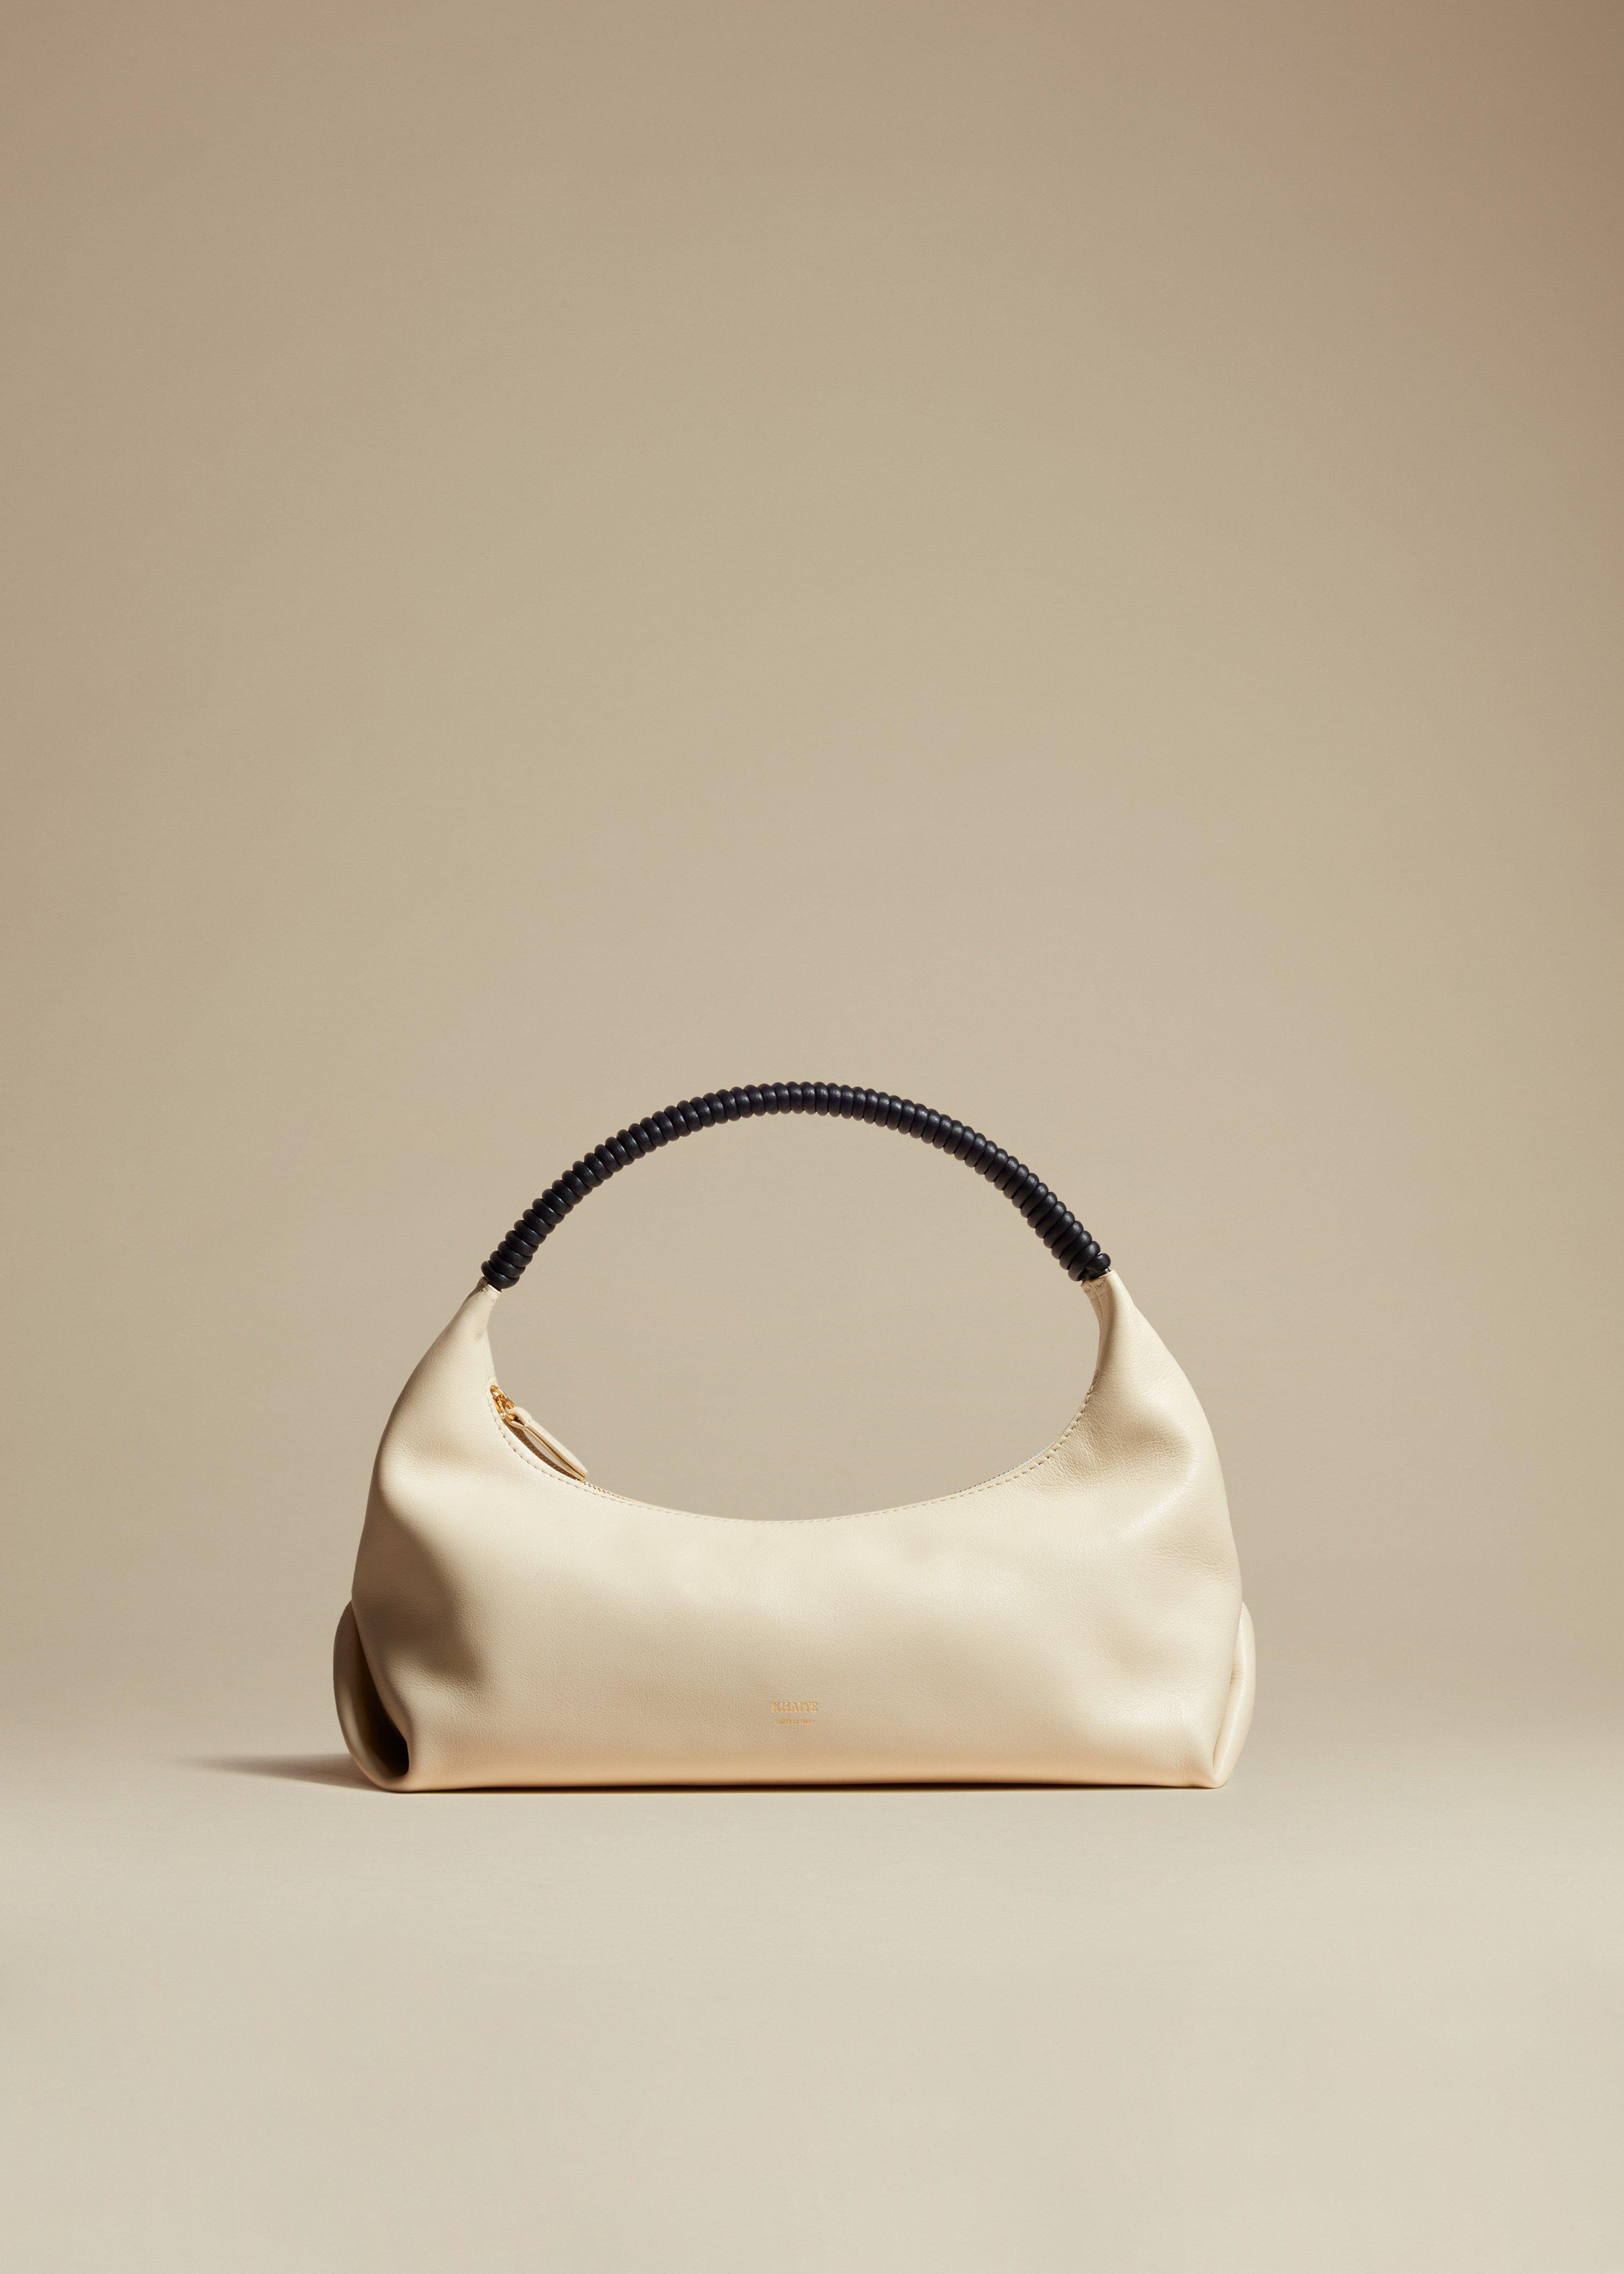 The Remi Hobo in Cream Leather